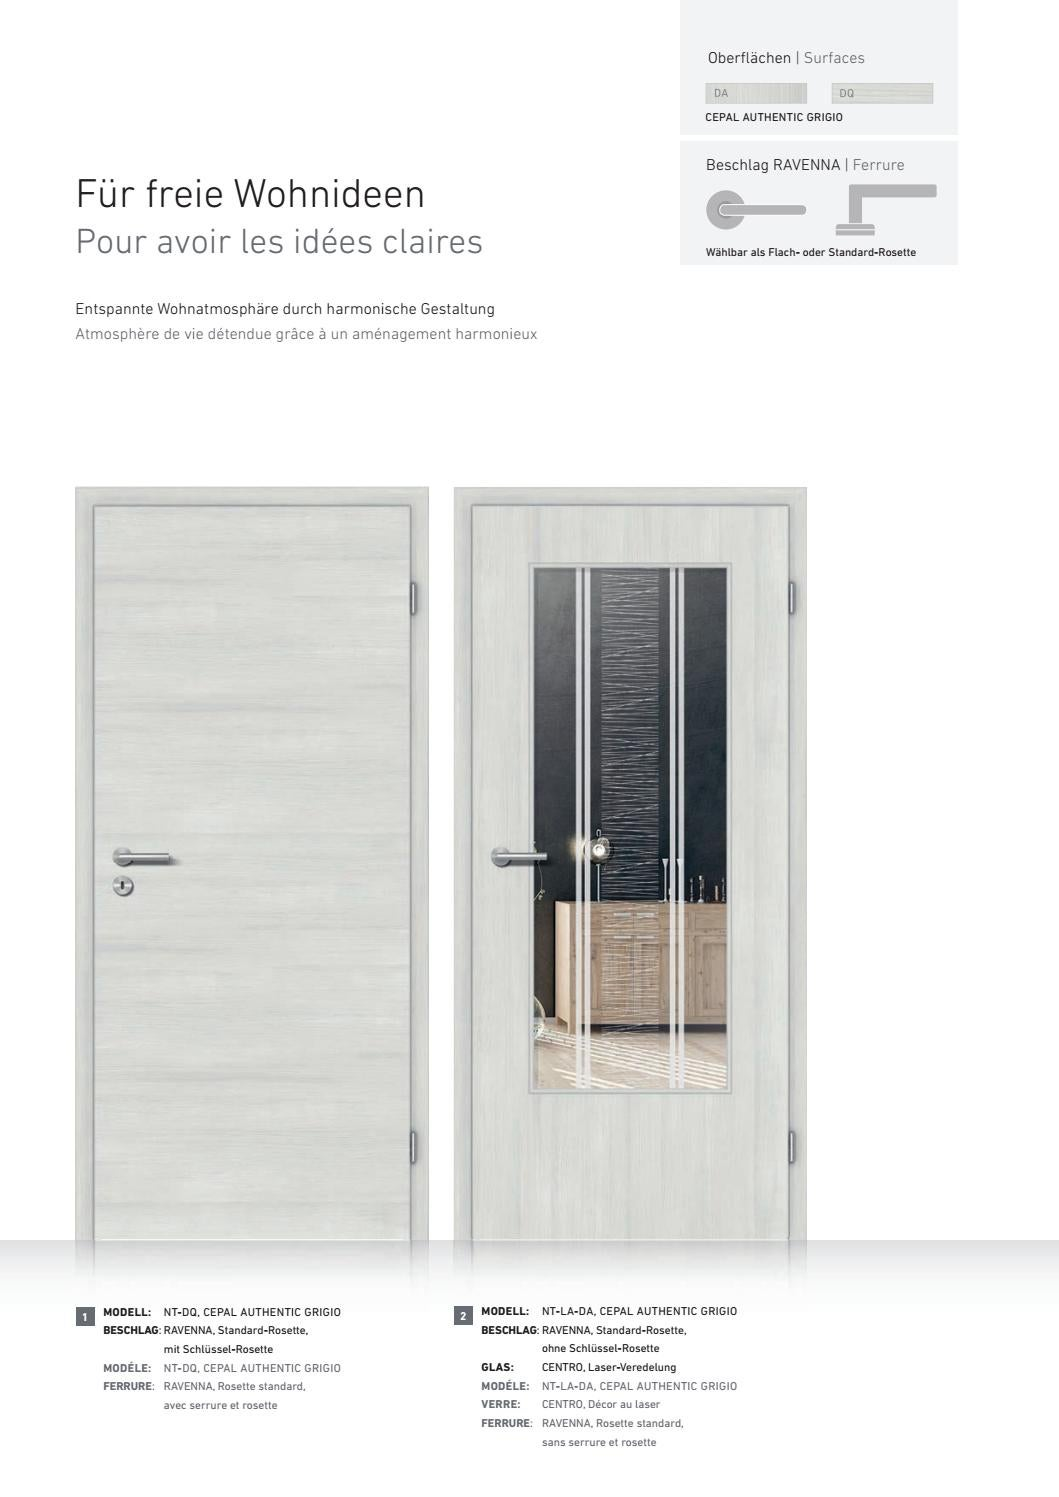 Garant cepal by Kaiser Design - issuu